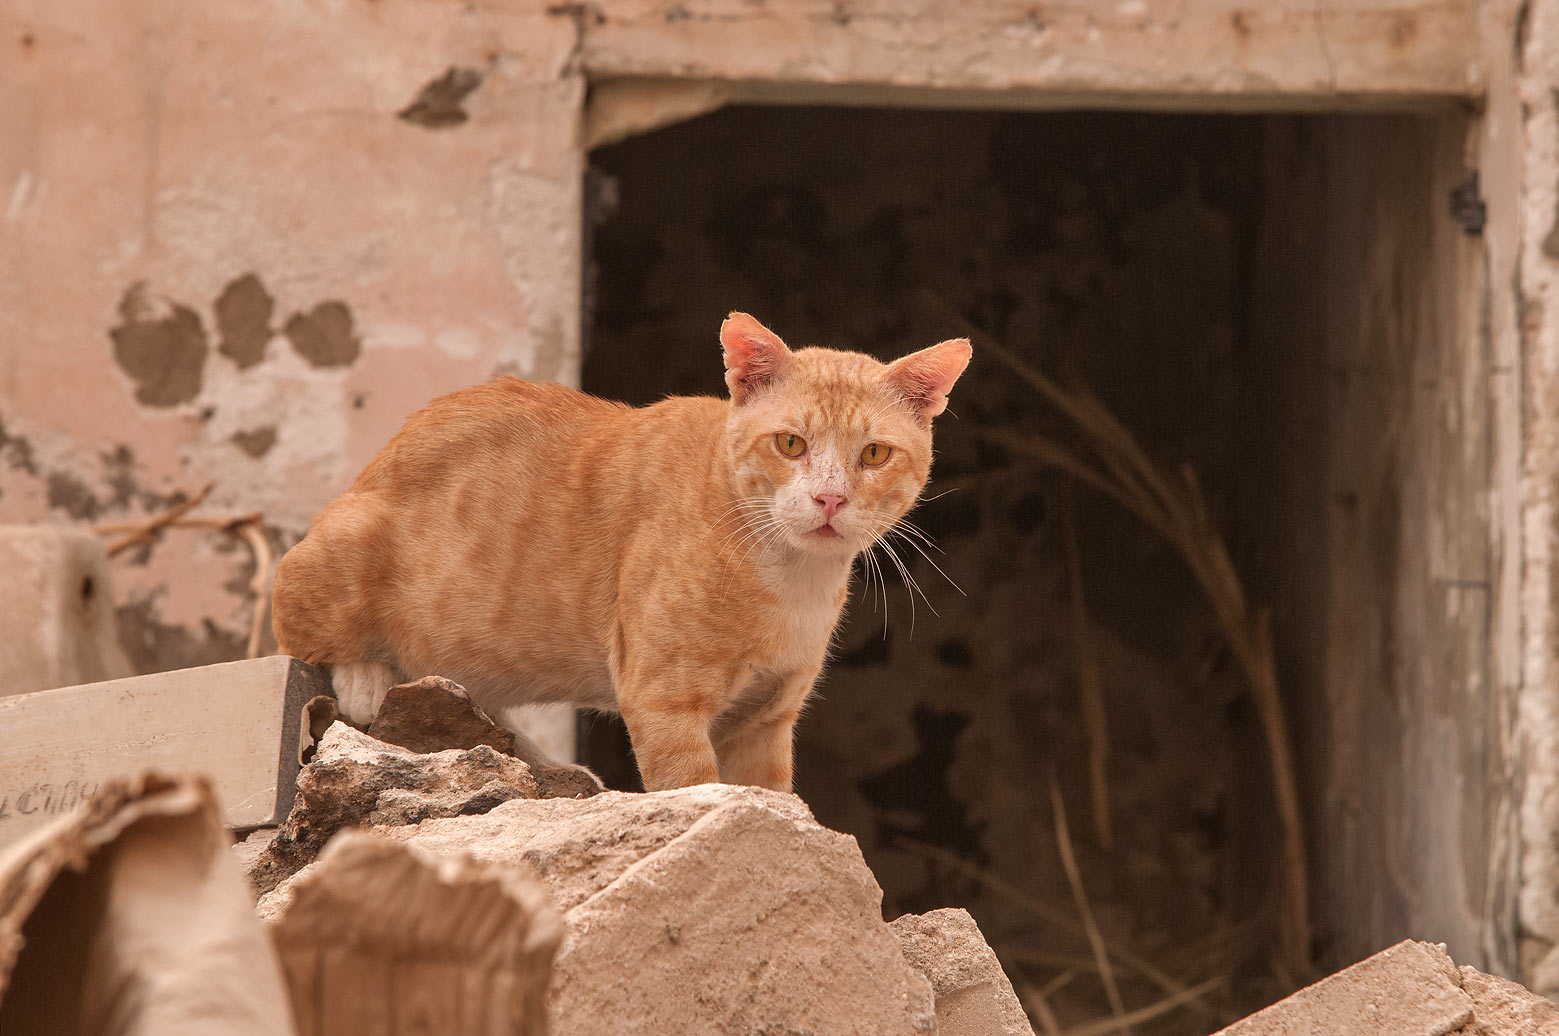 Brown mature cat standing on stone rubble in...Thani St., Musheirib area. Doha, Qatar